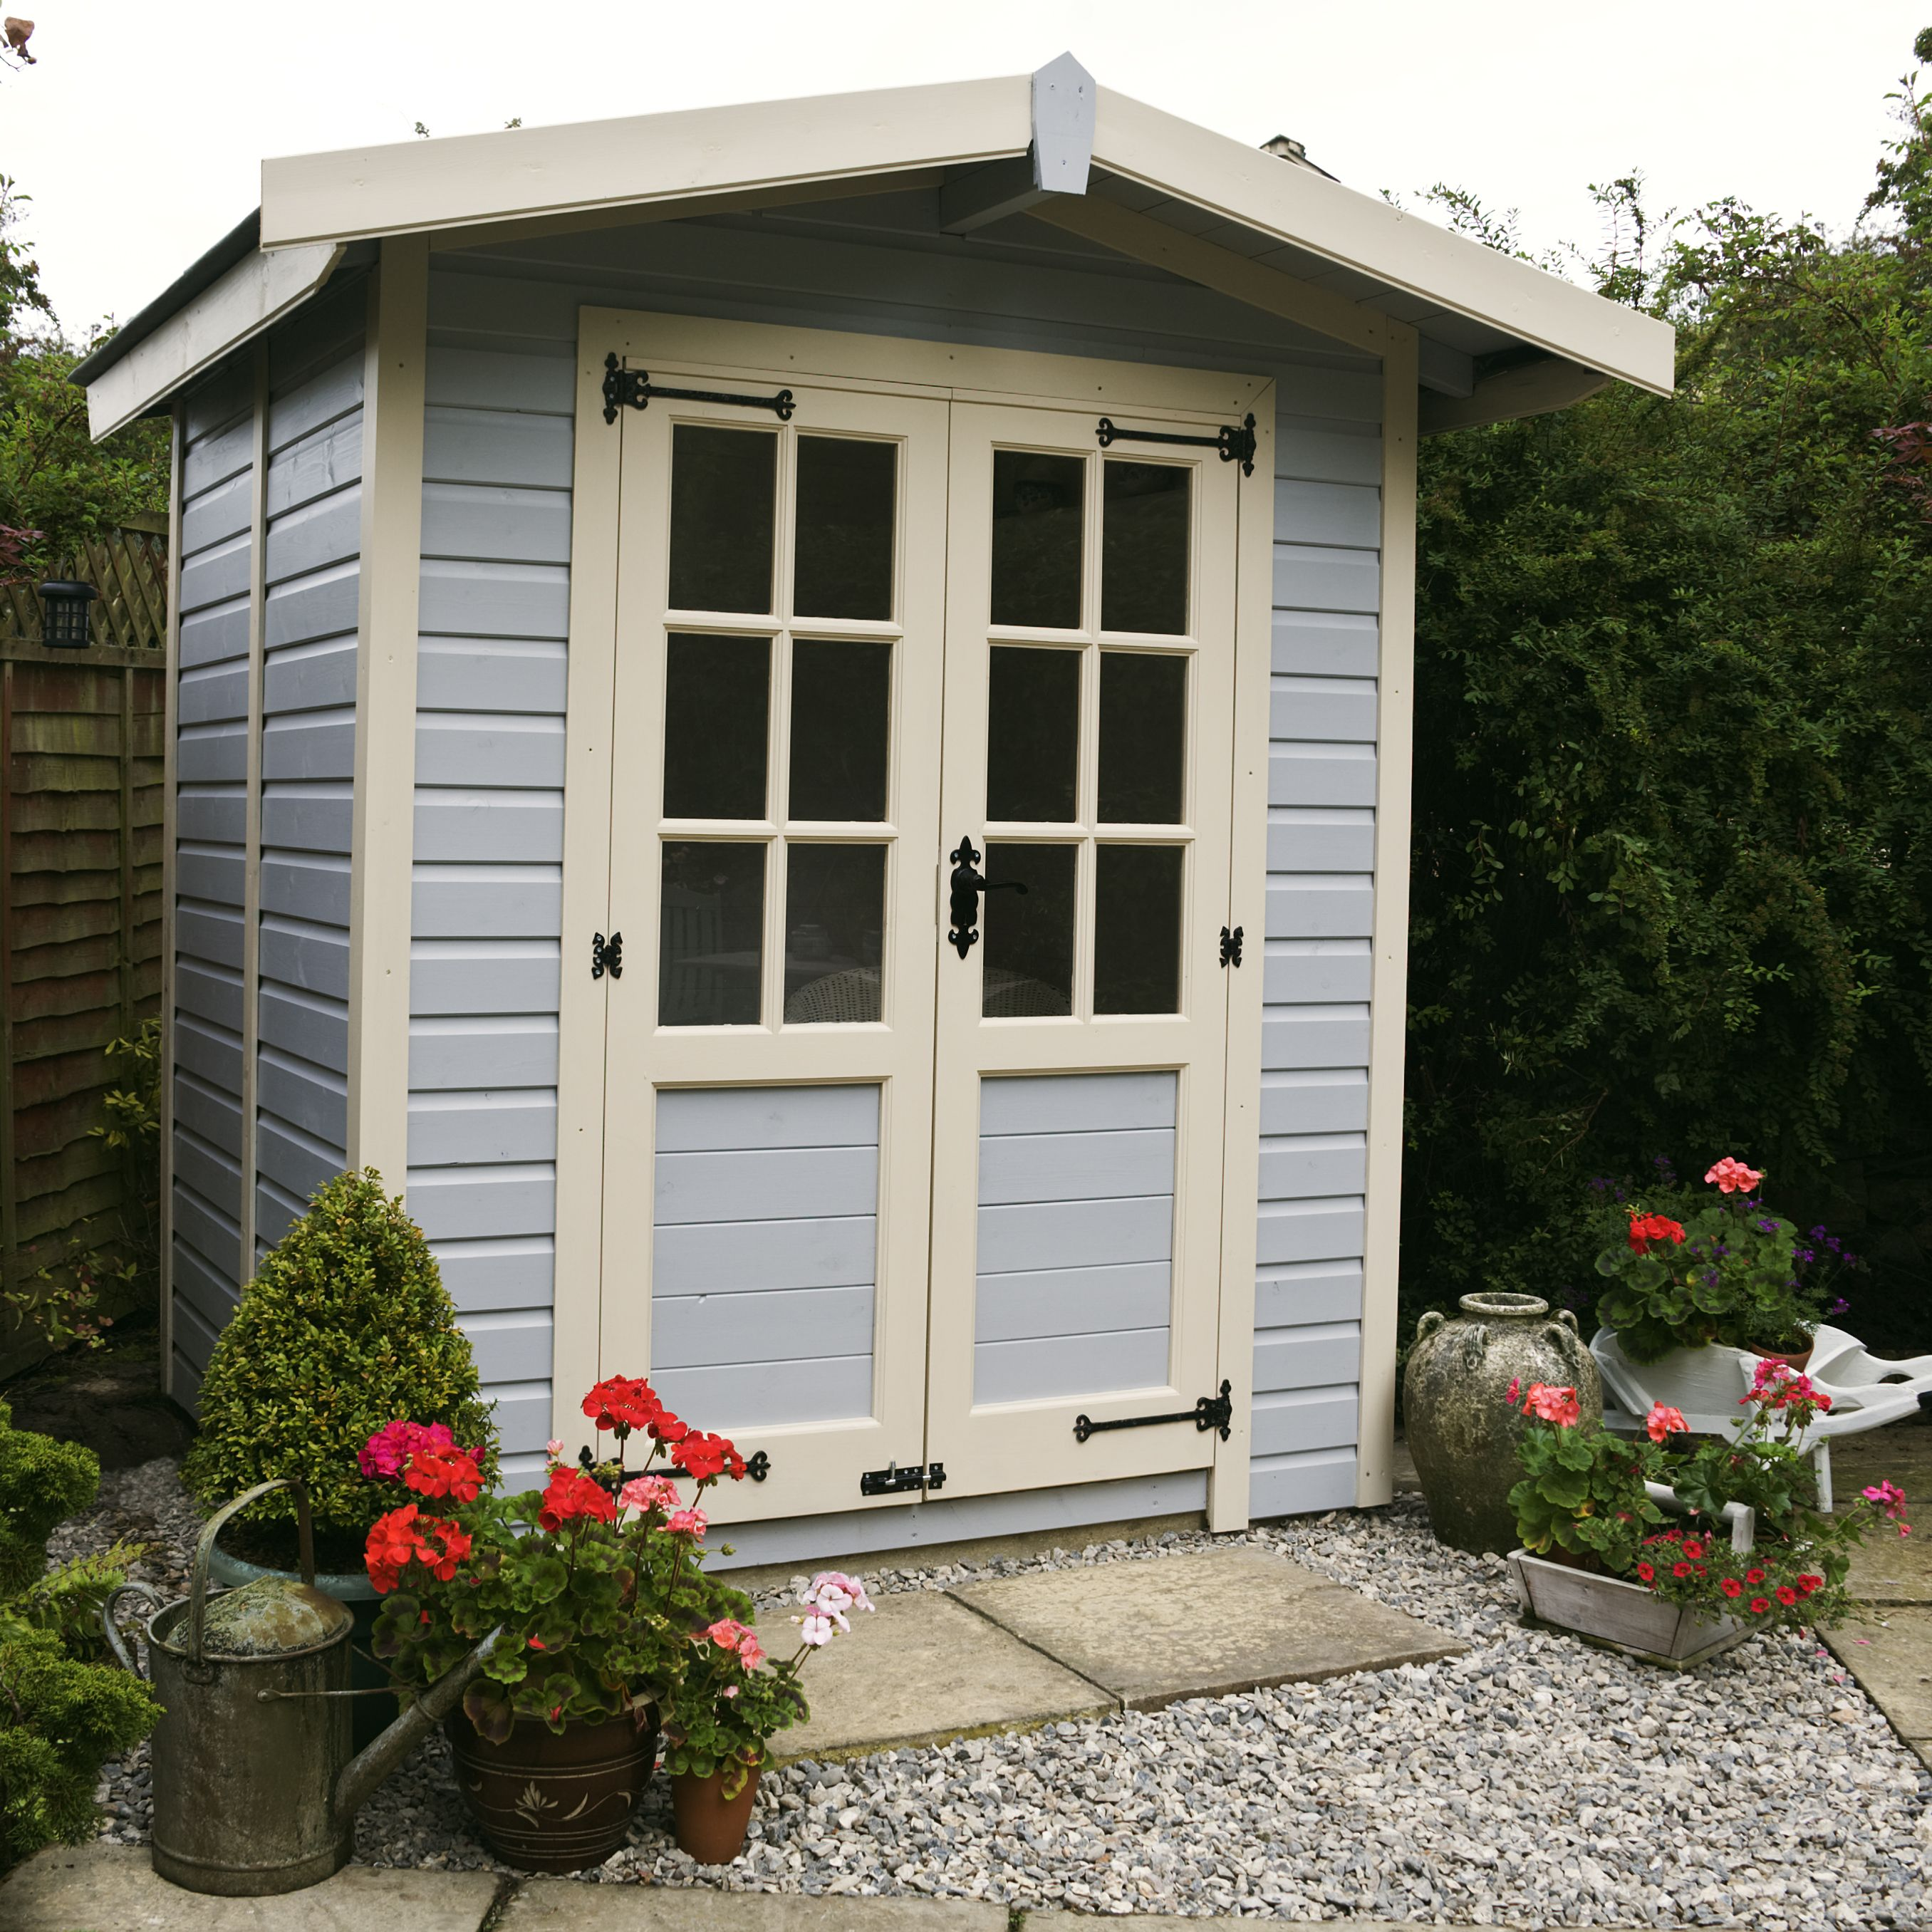 My very own summer house in my garden lovingly built by my husband ...